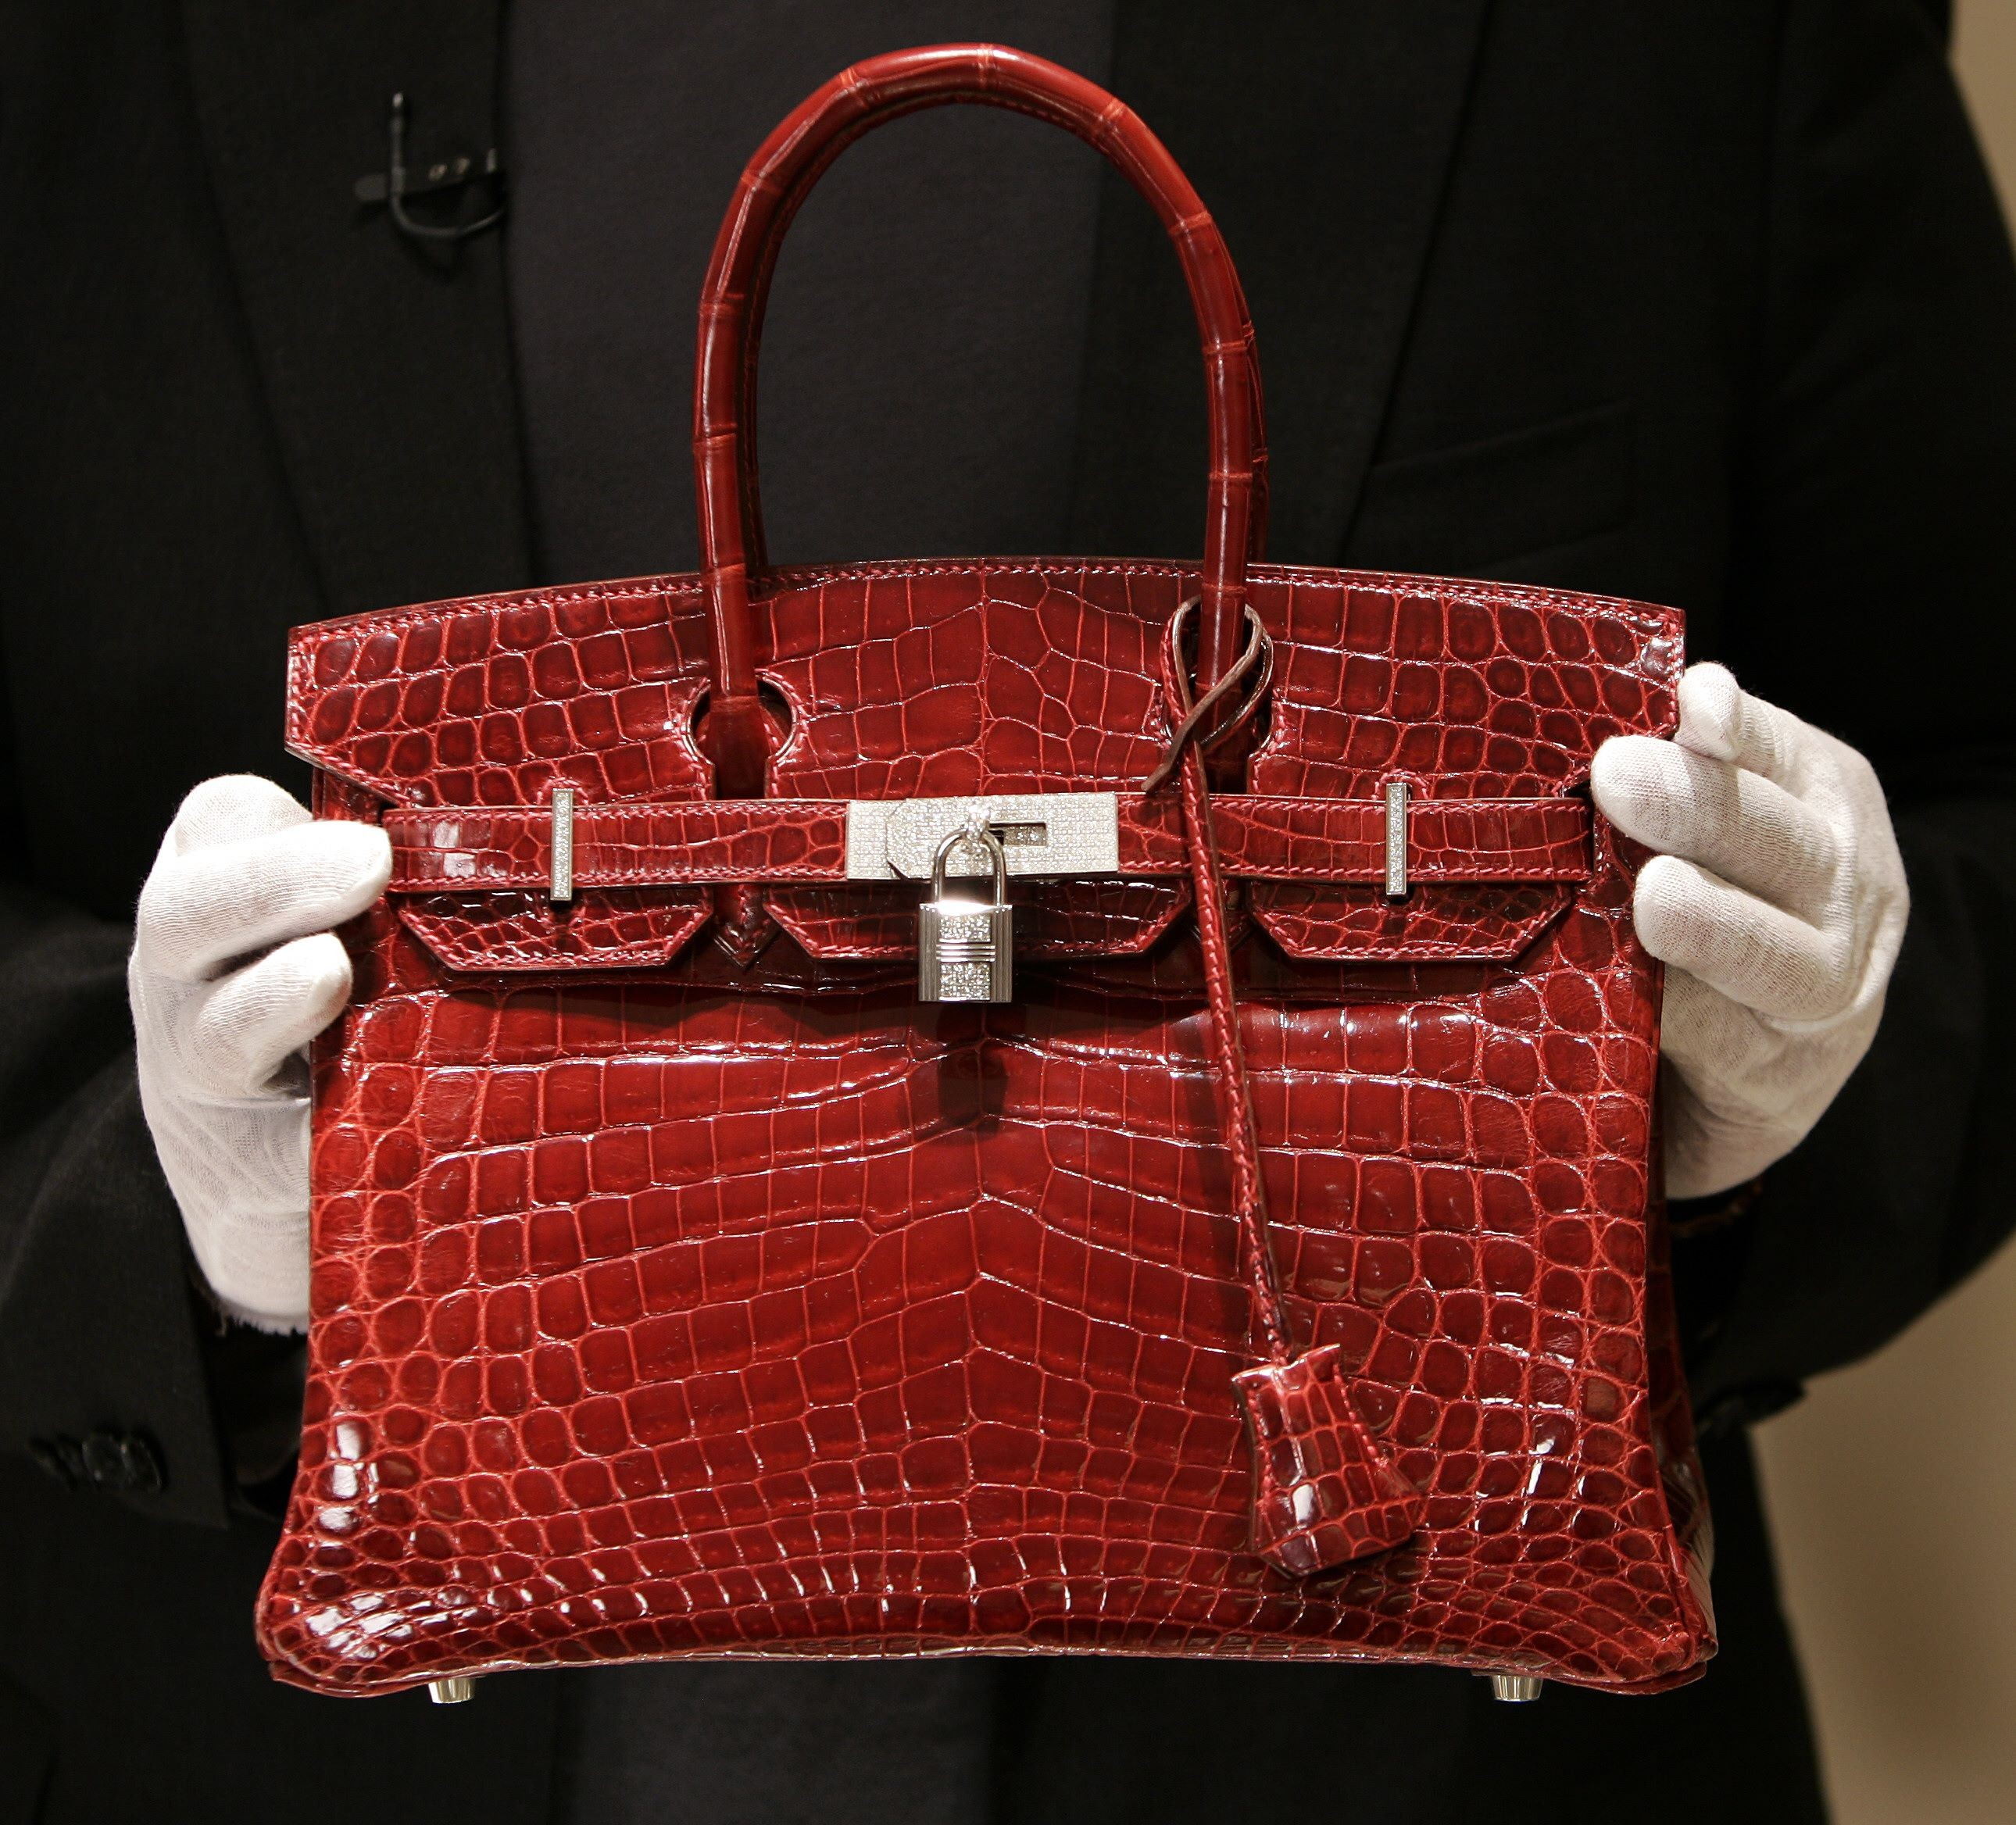 1c33075d8dea Chanel, Victoria Beckham, Topshop have all banned exotic skins – but trend  could be doing more harm than good